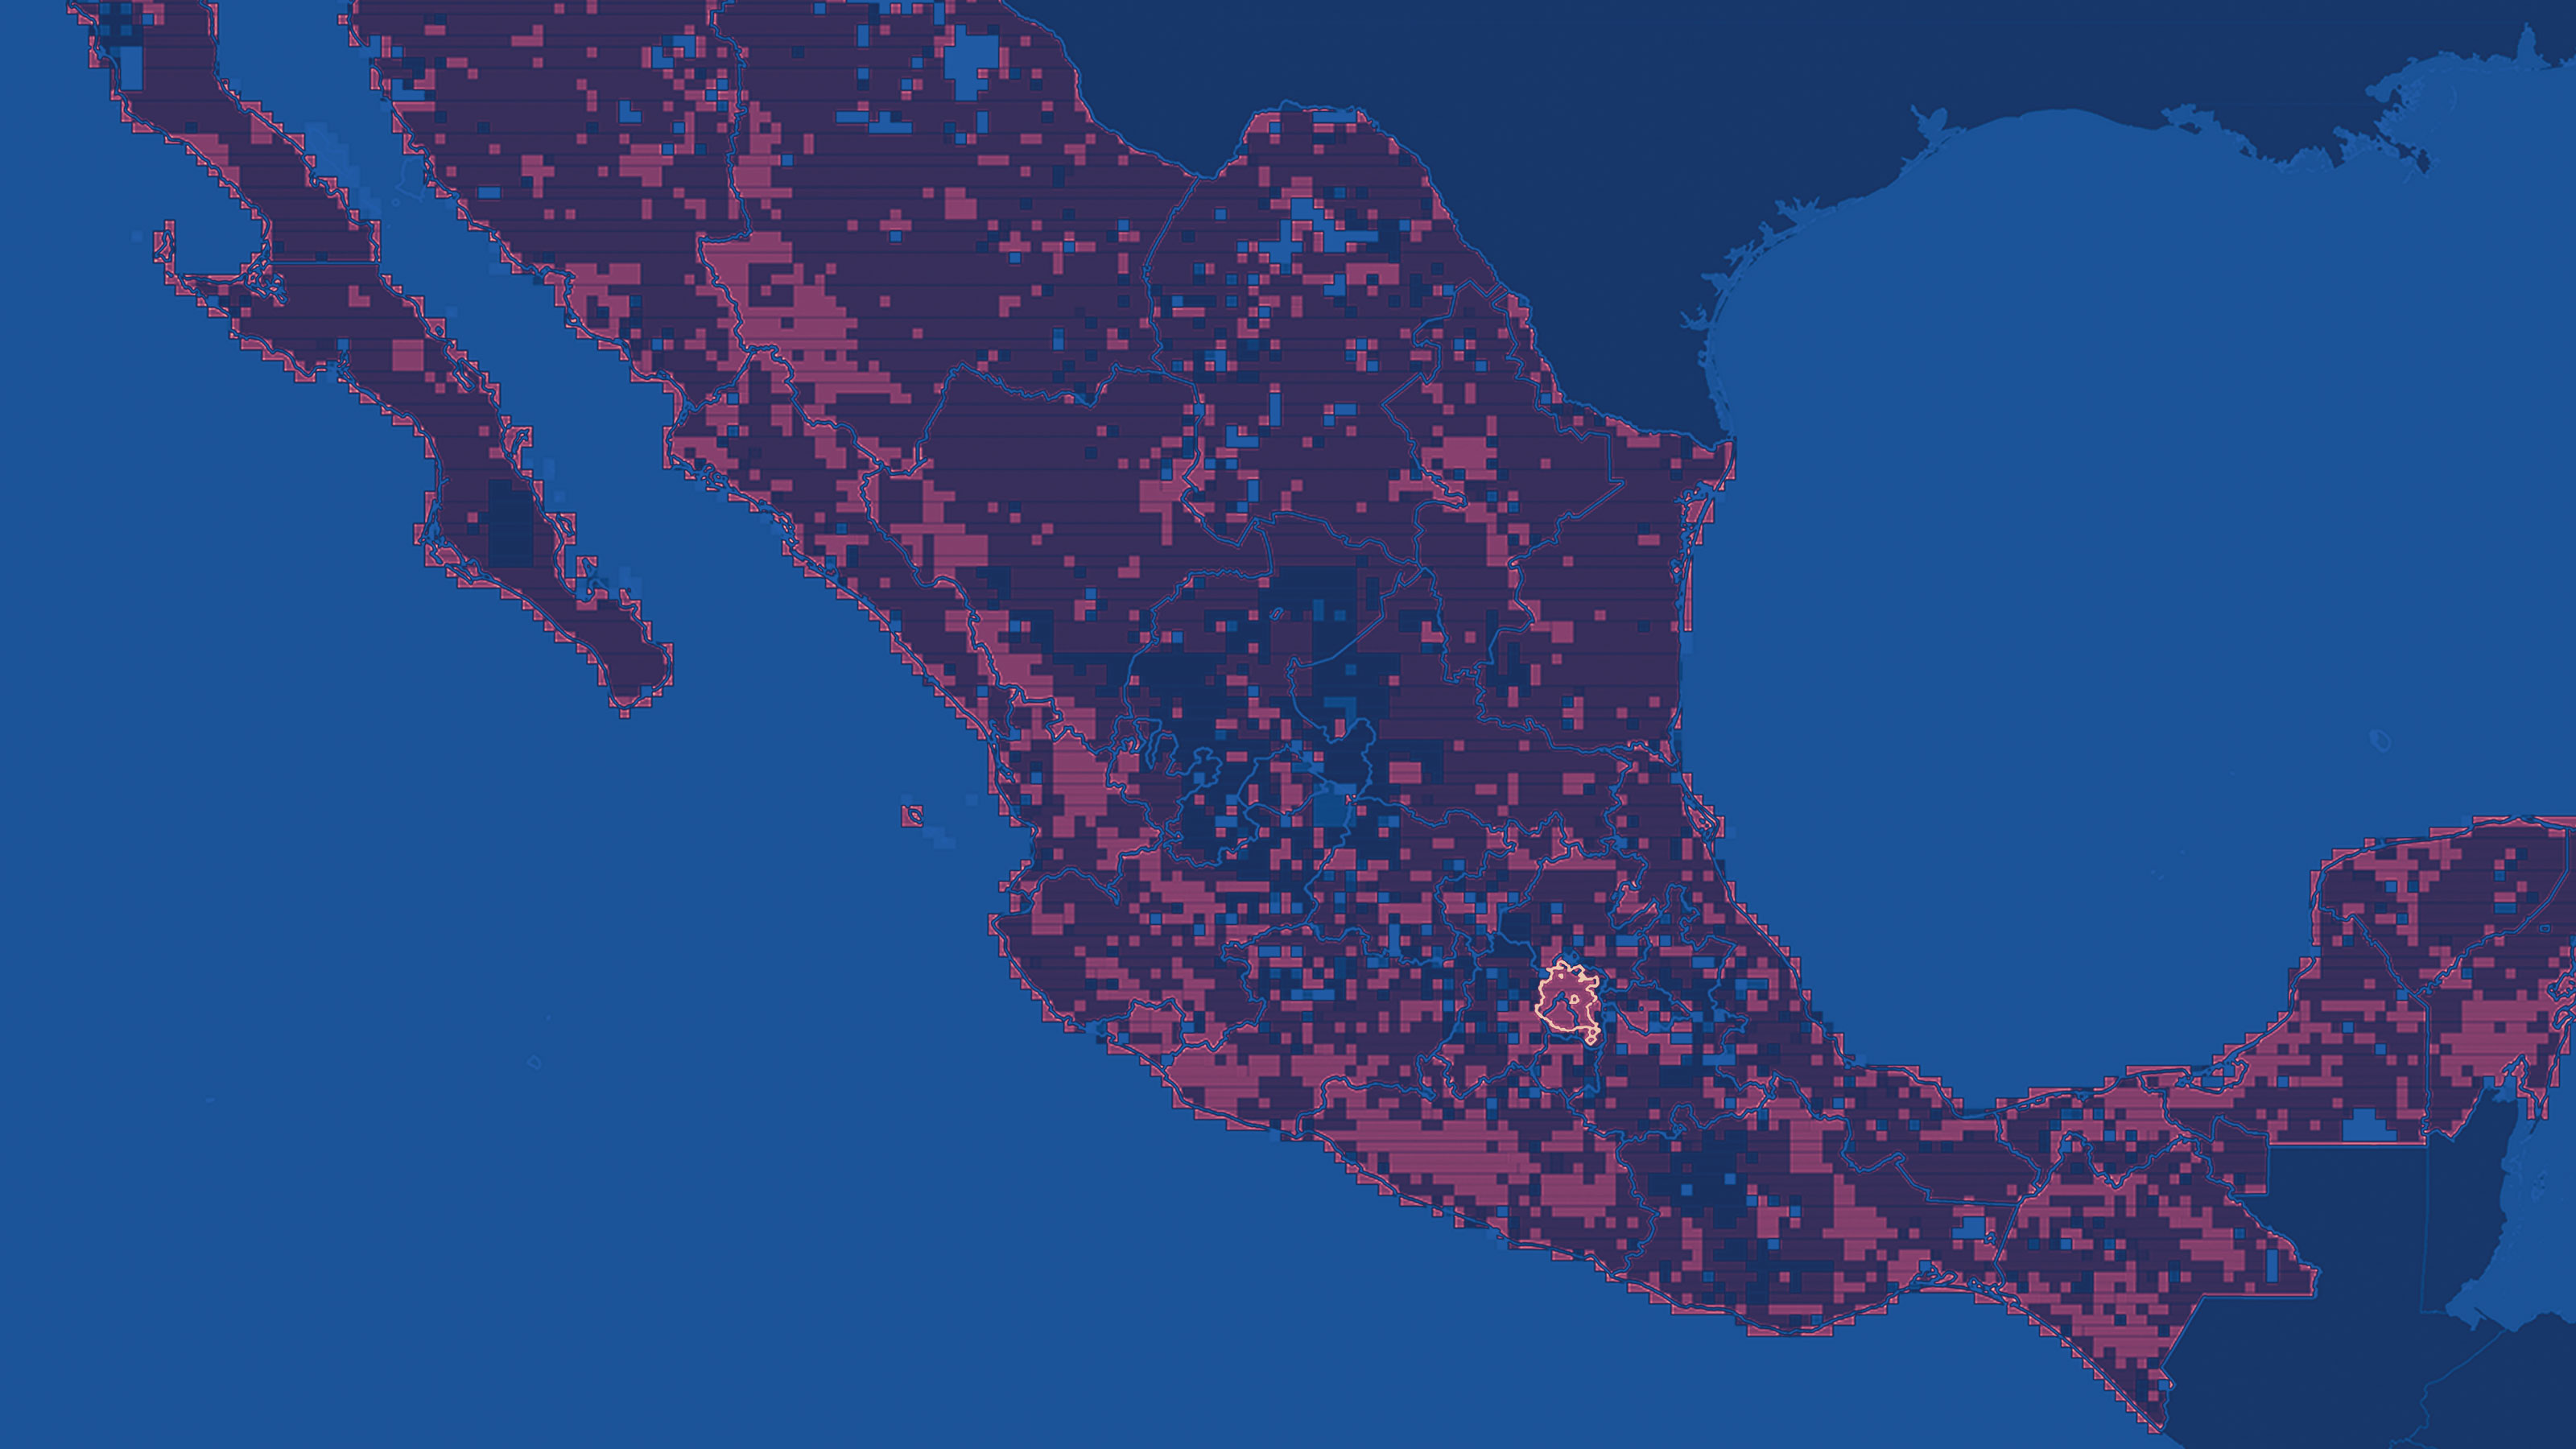 Choropleth map of Mexico showing change in population density